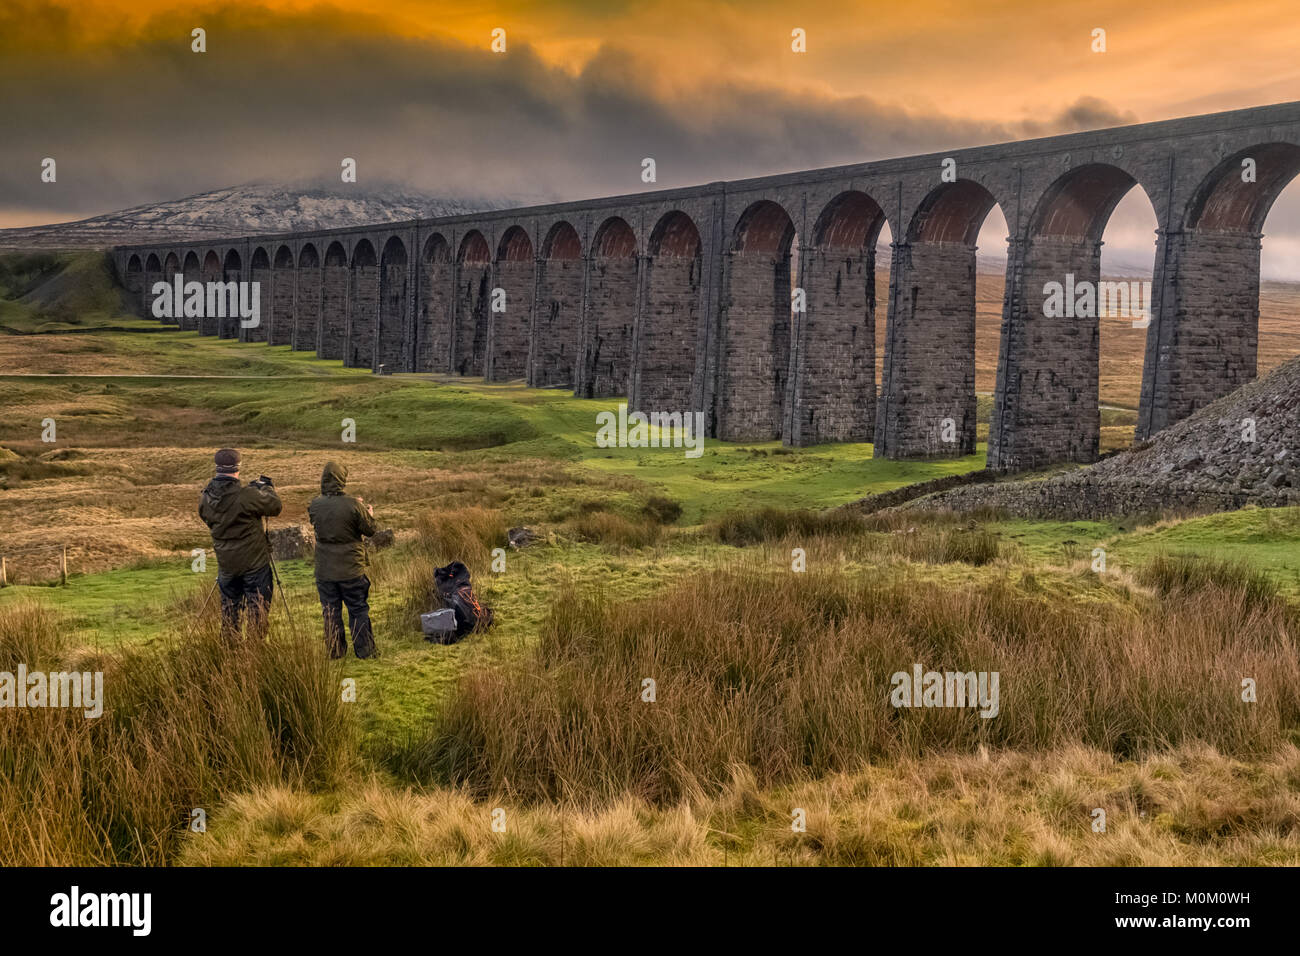 Photographers capturing the majesty of Ribblehead Viaduct on the Settle-Carlisle railway - Stock Image